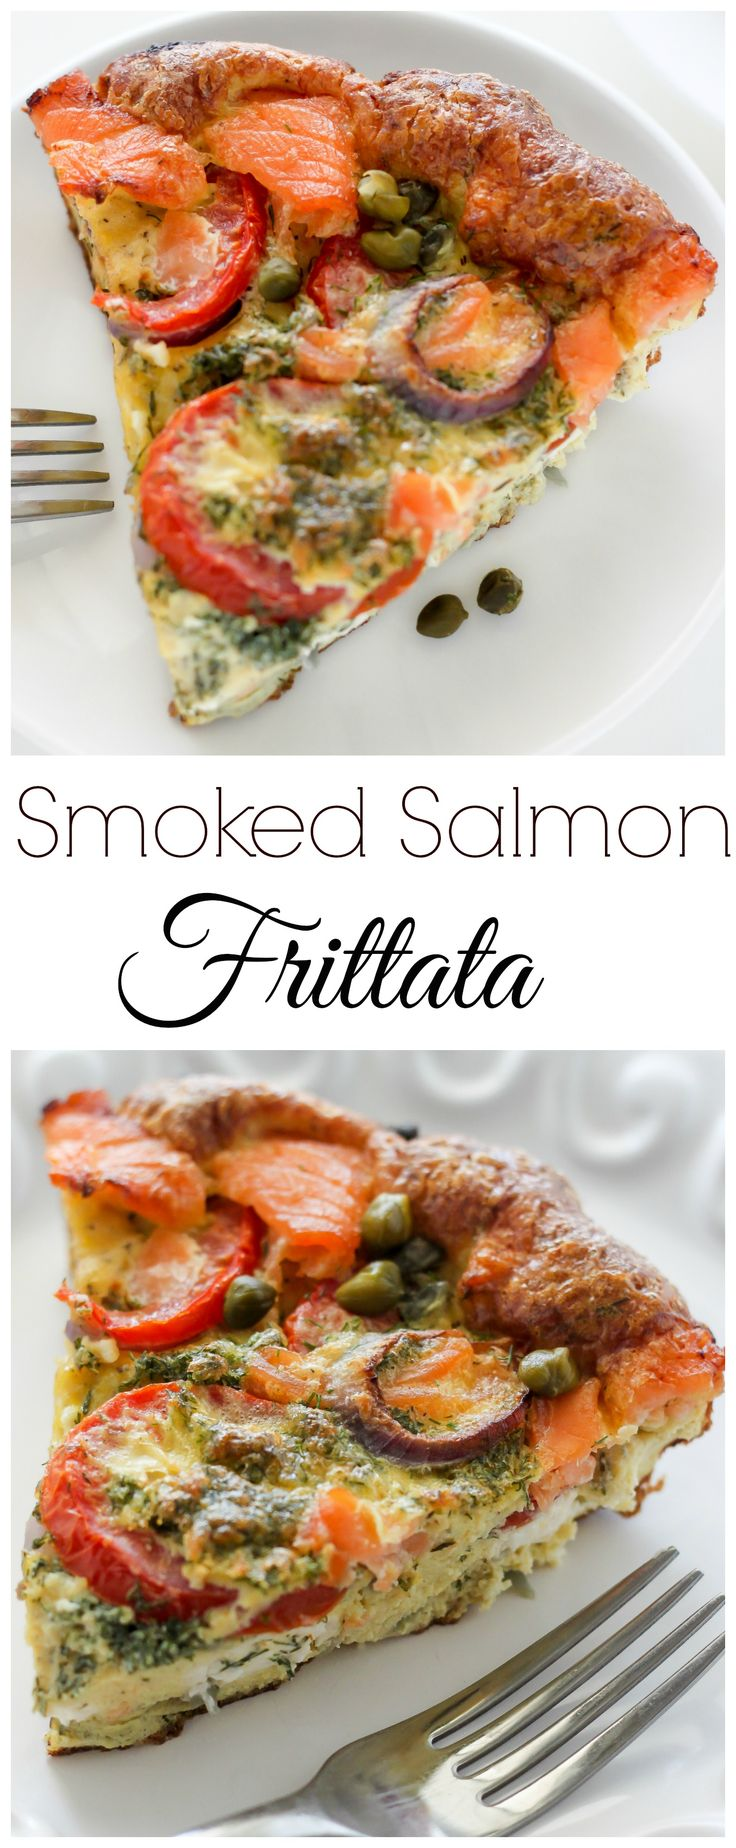 Smoked Salmon Frittata ..using coconut milk and almond milk